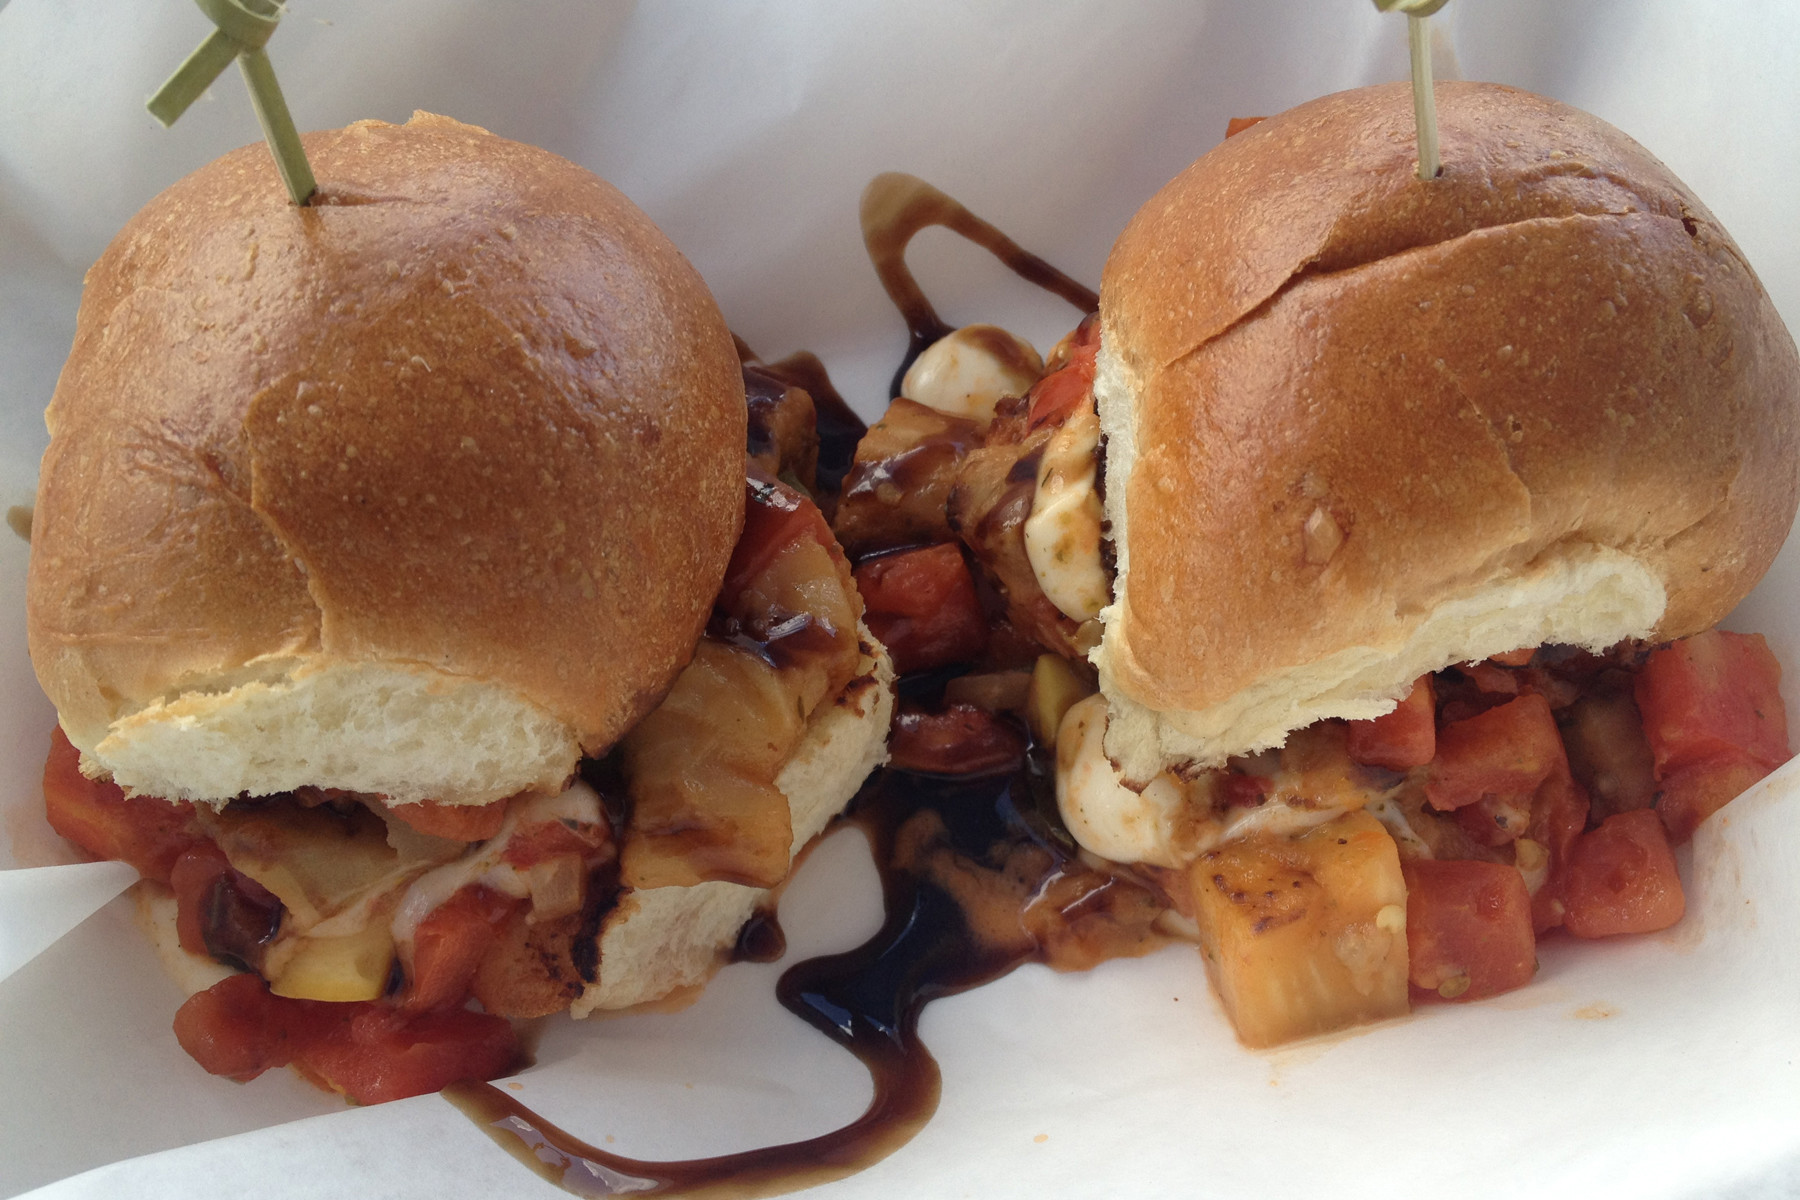 The Salty Fig got its start about a year ago as a food truck serving up Southern fare like shrimp and grits, cochon de lait and these ratatouille sliders.